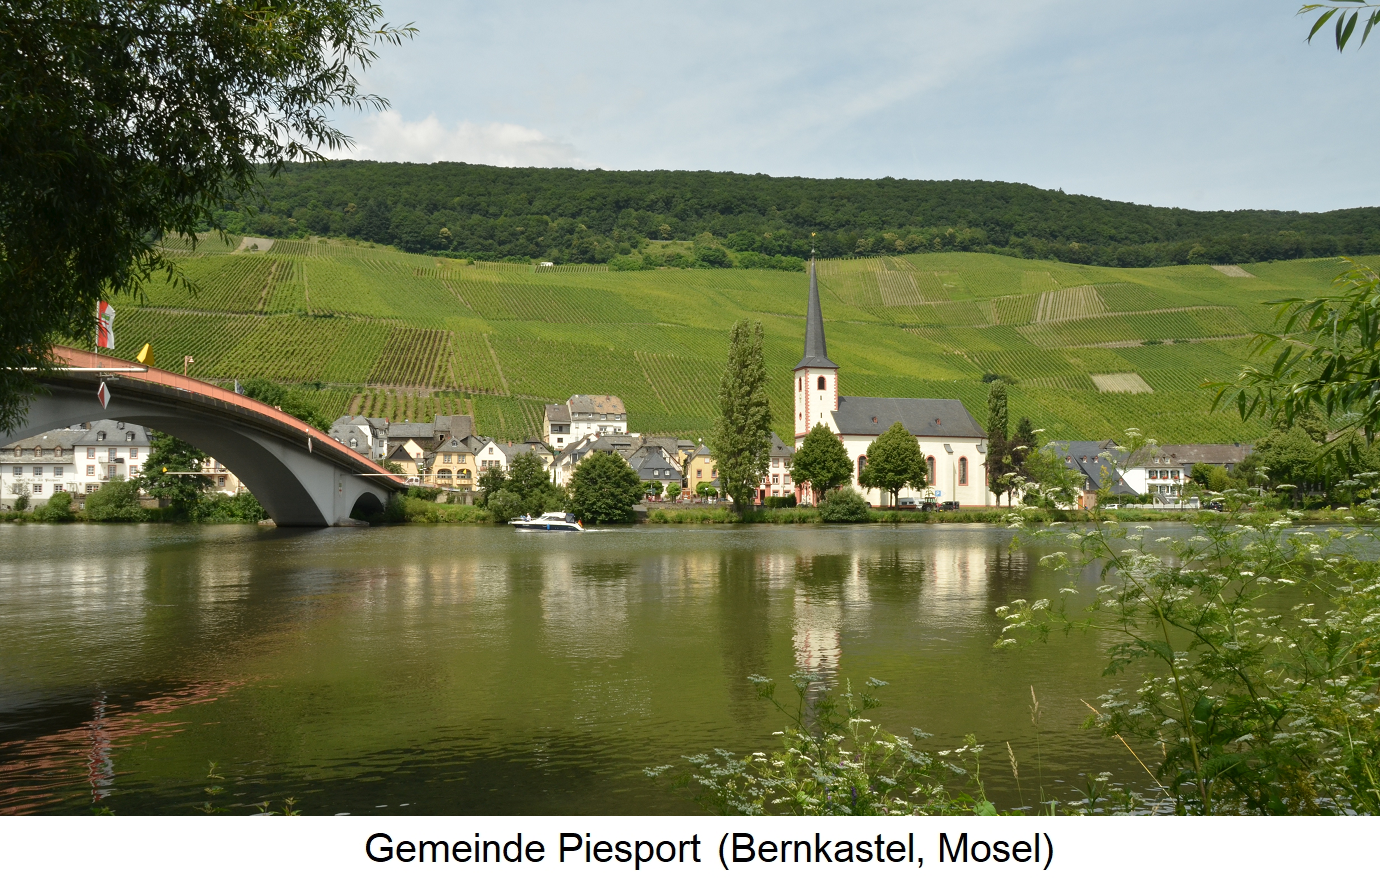 Gold droplets - community Piesport (Bernkastel, Mosel)